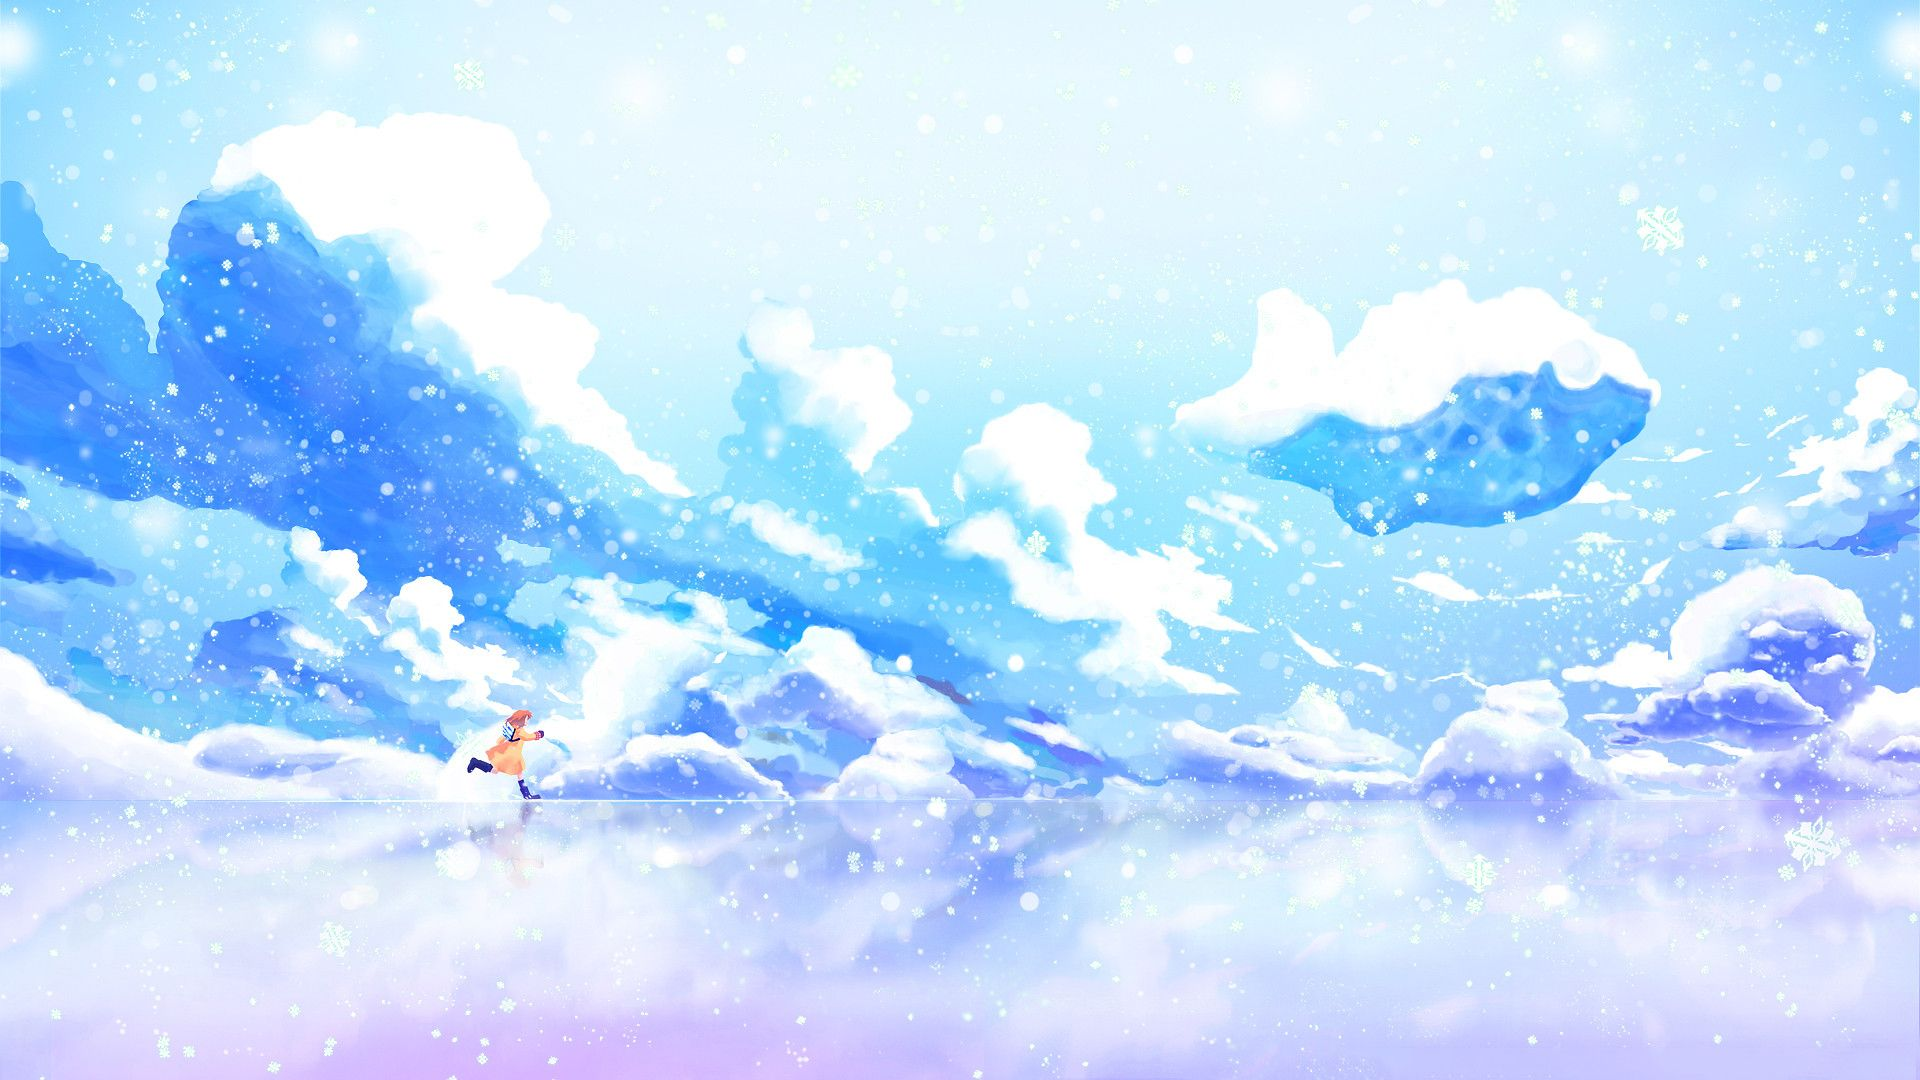 Anime Scenery Ice Free Wallpaper Desktop #27289 Wallpaper ...